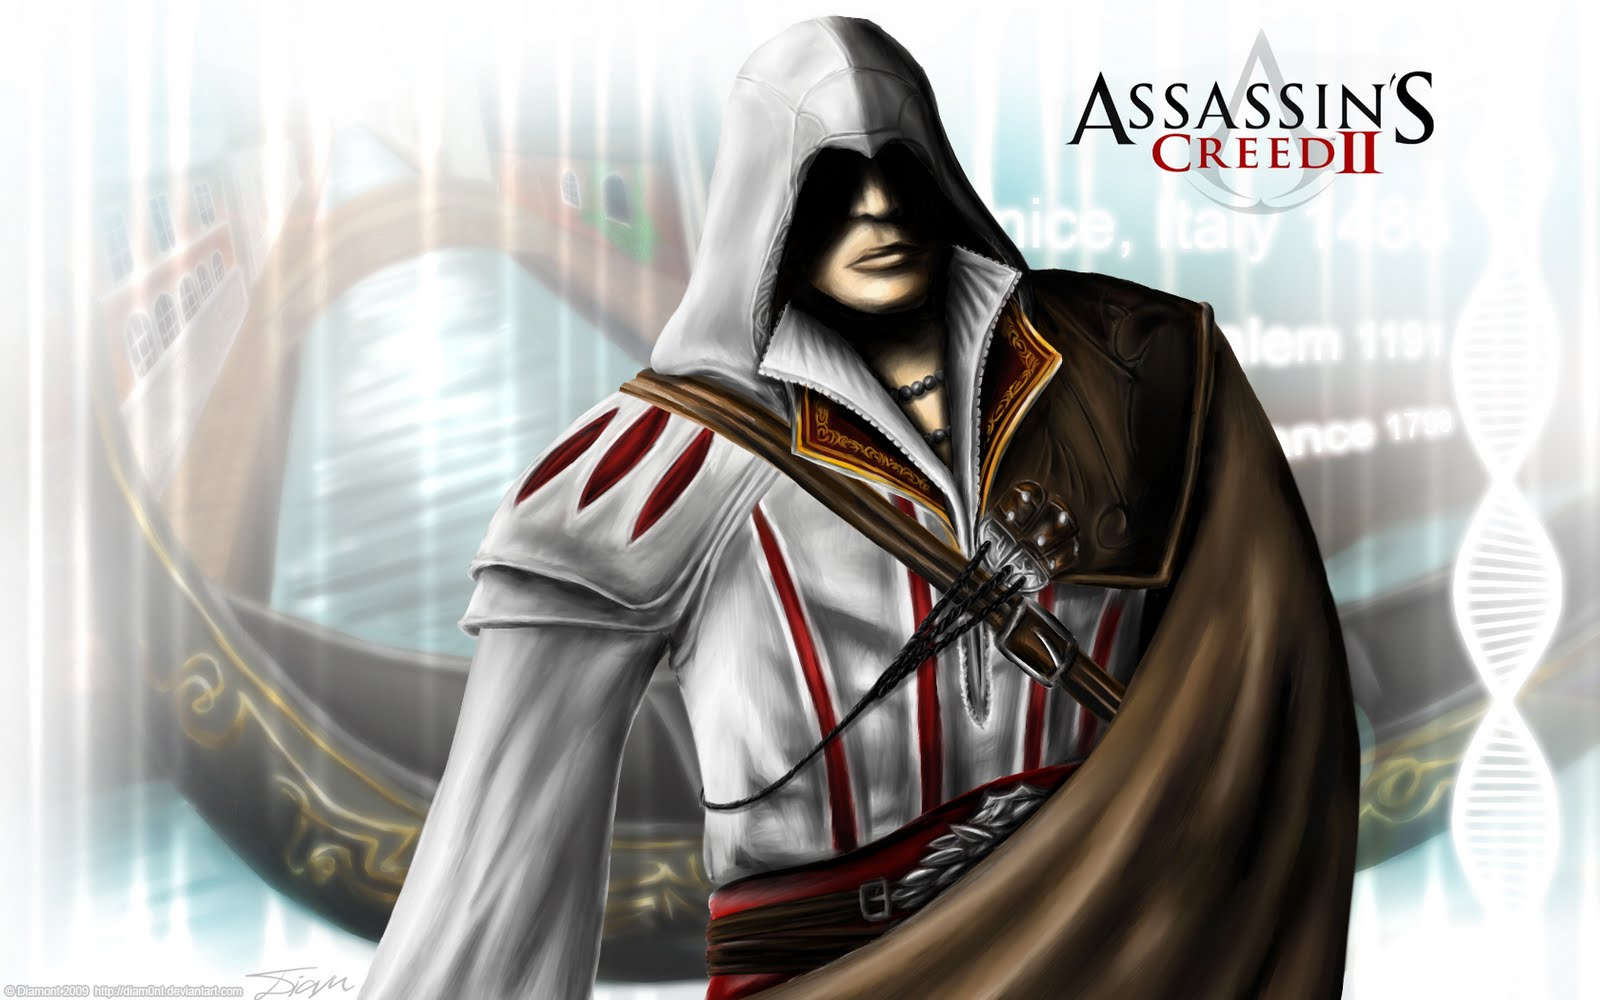 Wallpapers: Assassin's Creed 2